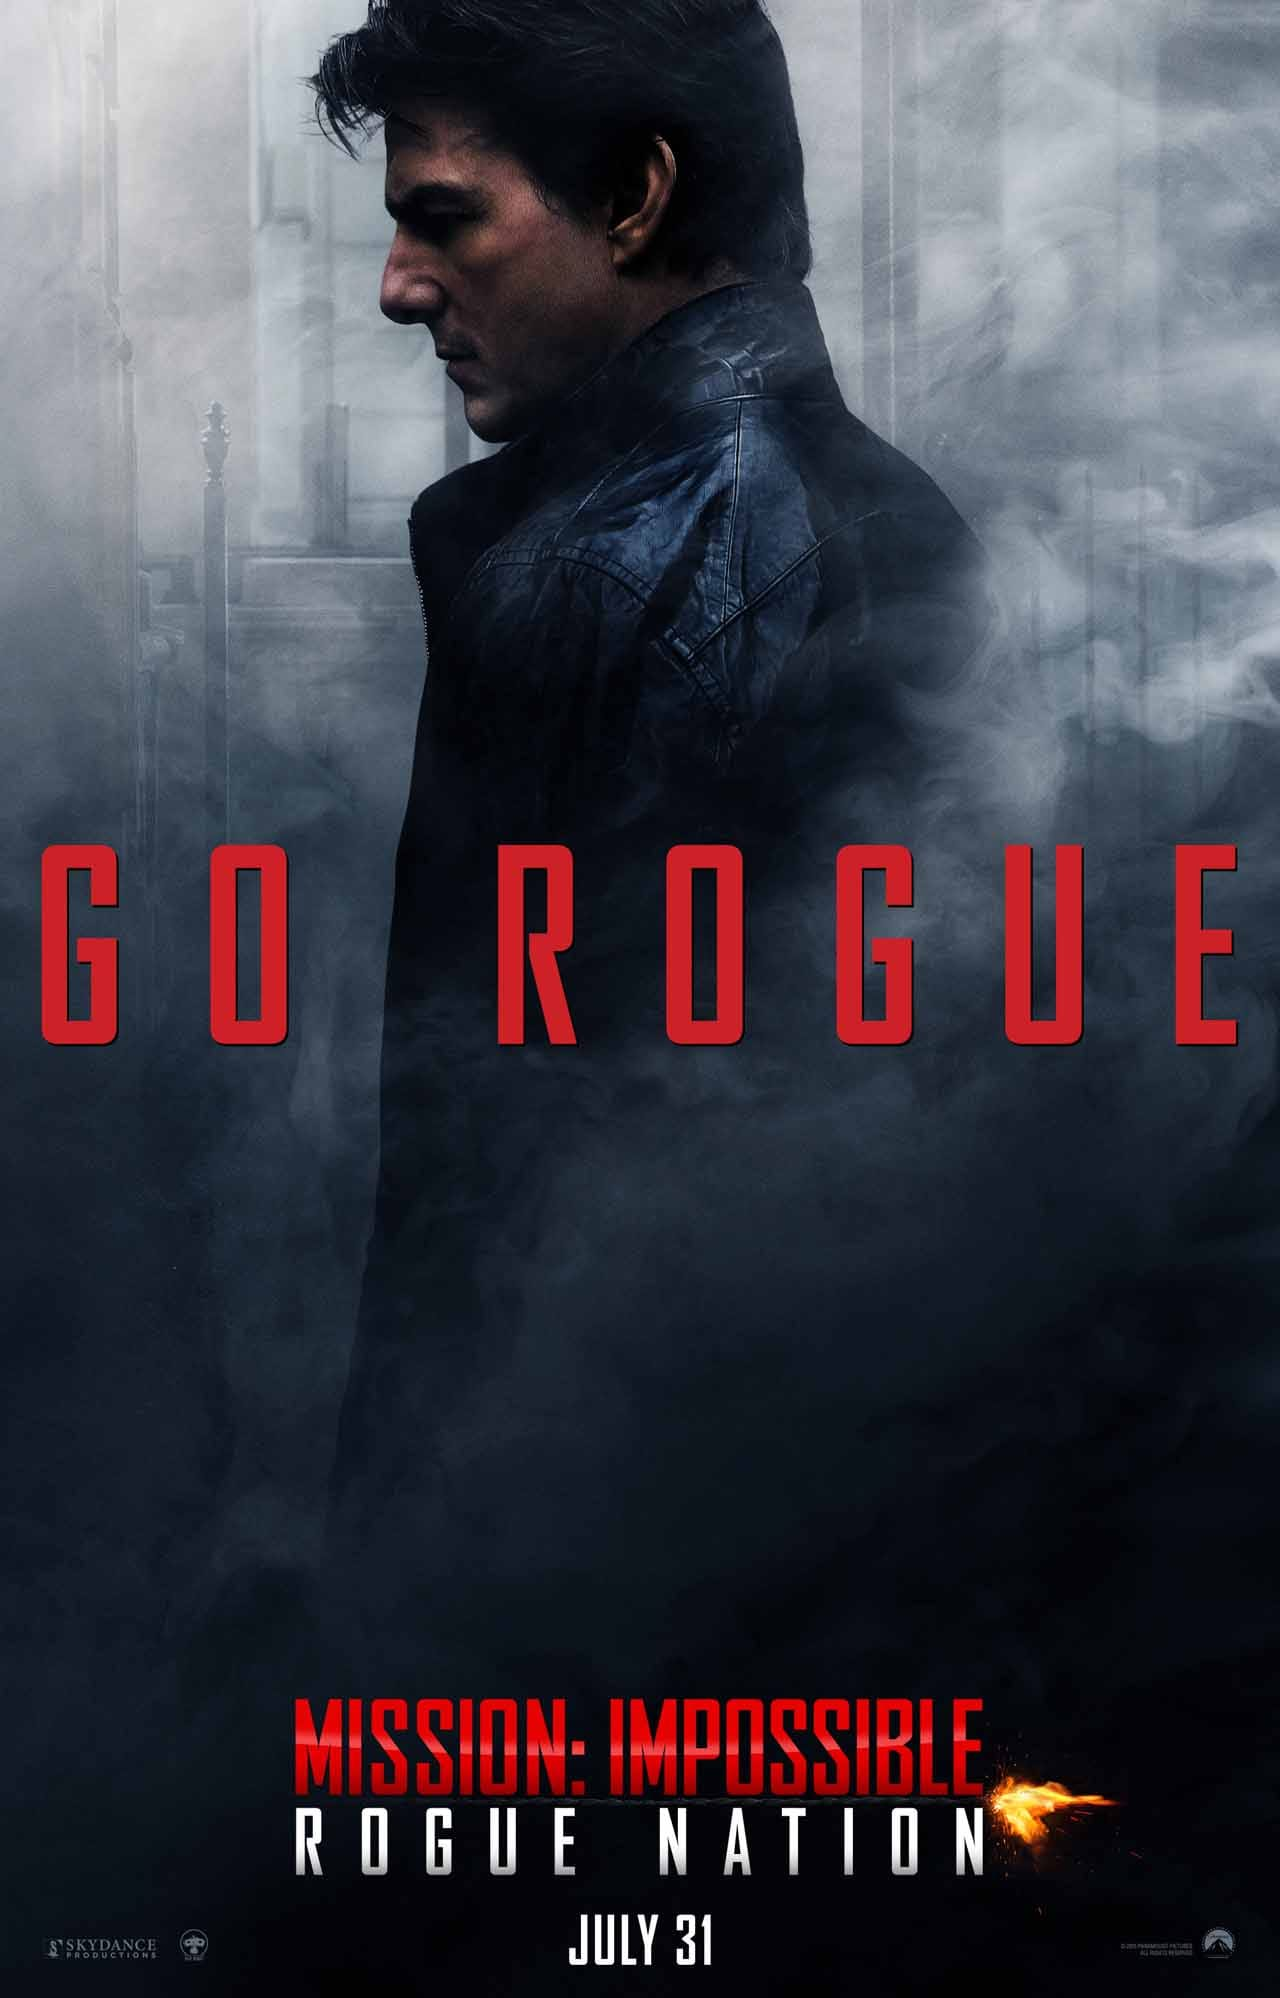 Mission: Impossible - Rogue Nation For mobile